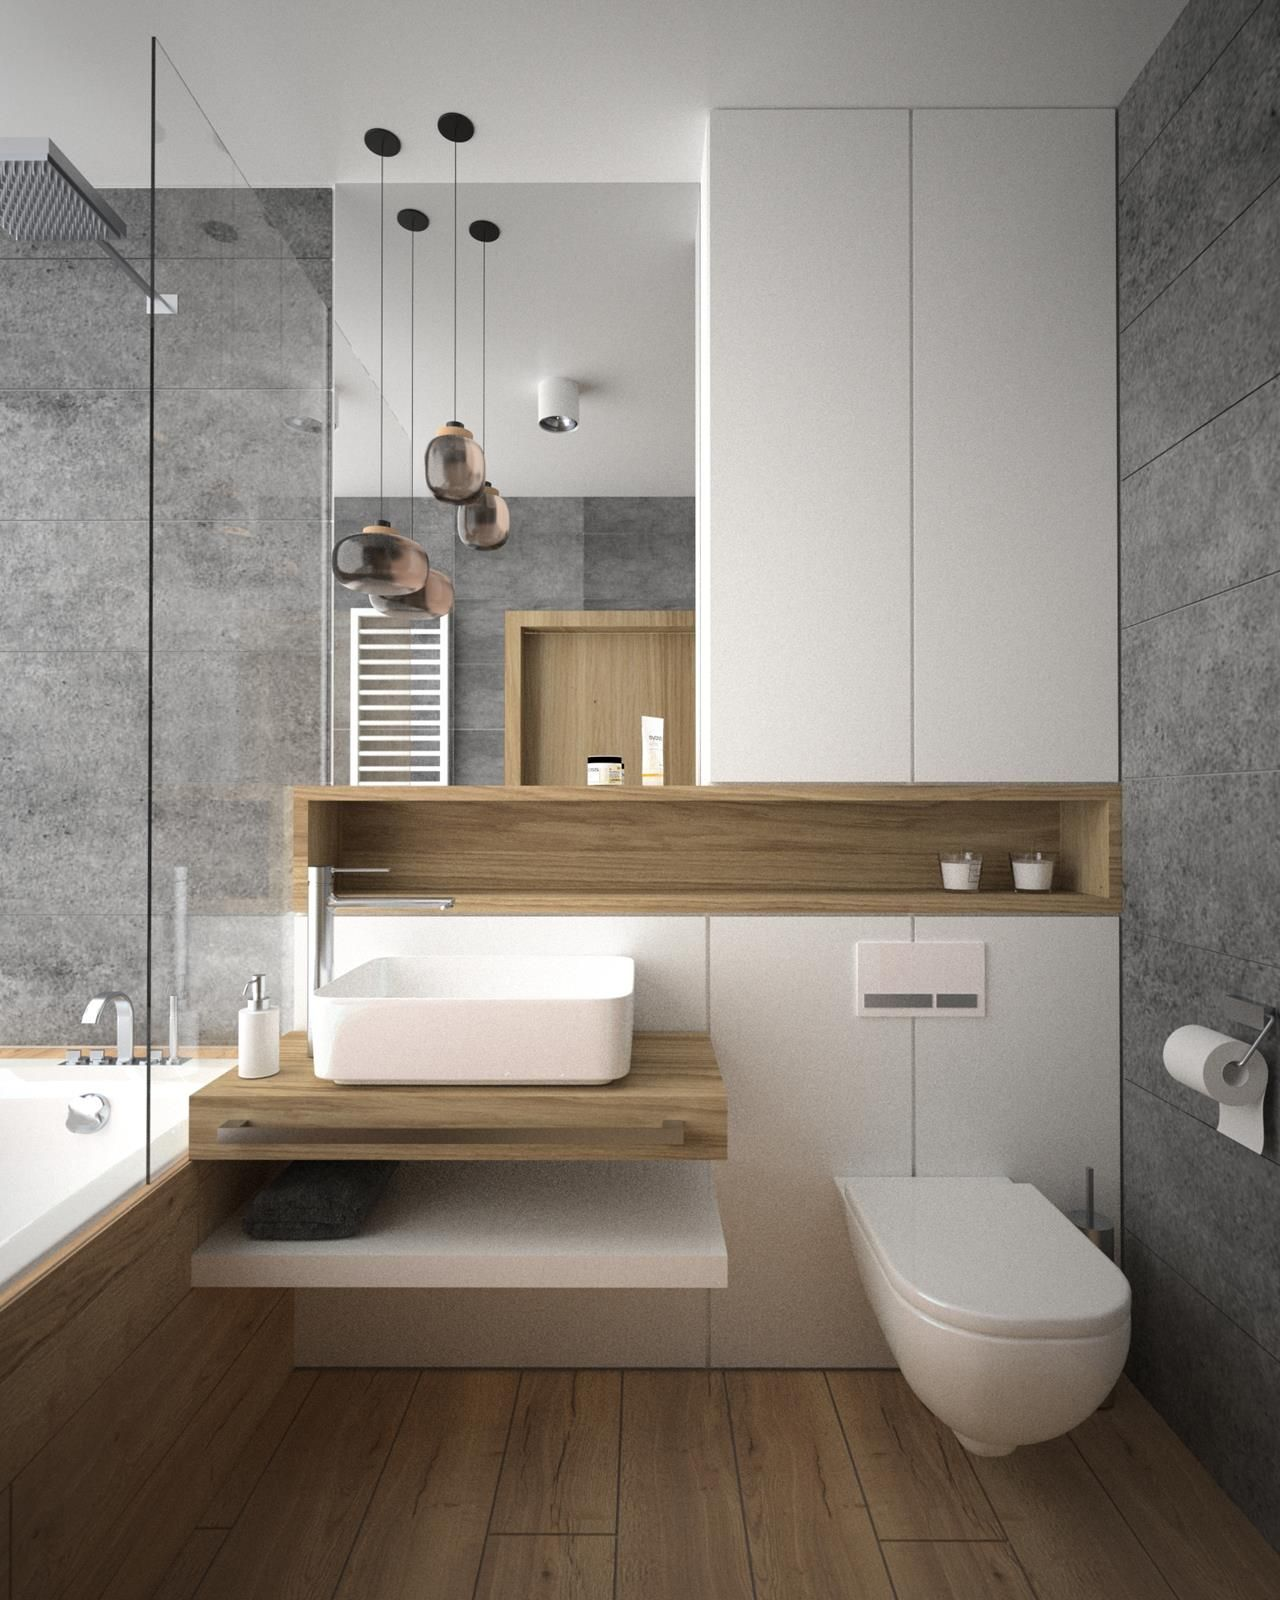 Pin by michael s on bathroom idea bathroom bathroom - Very small bathroom ideas ...